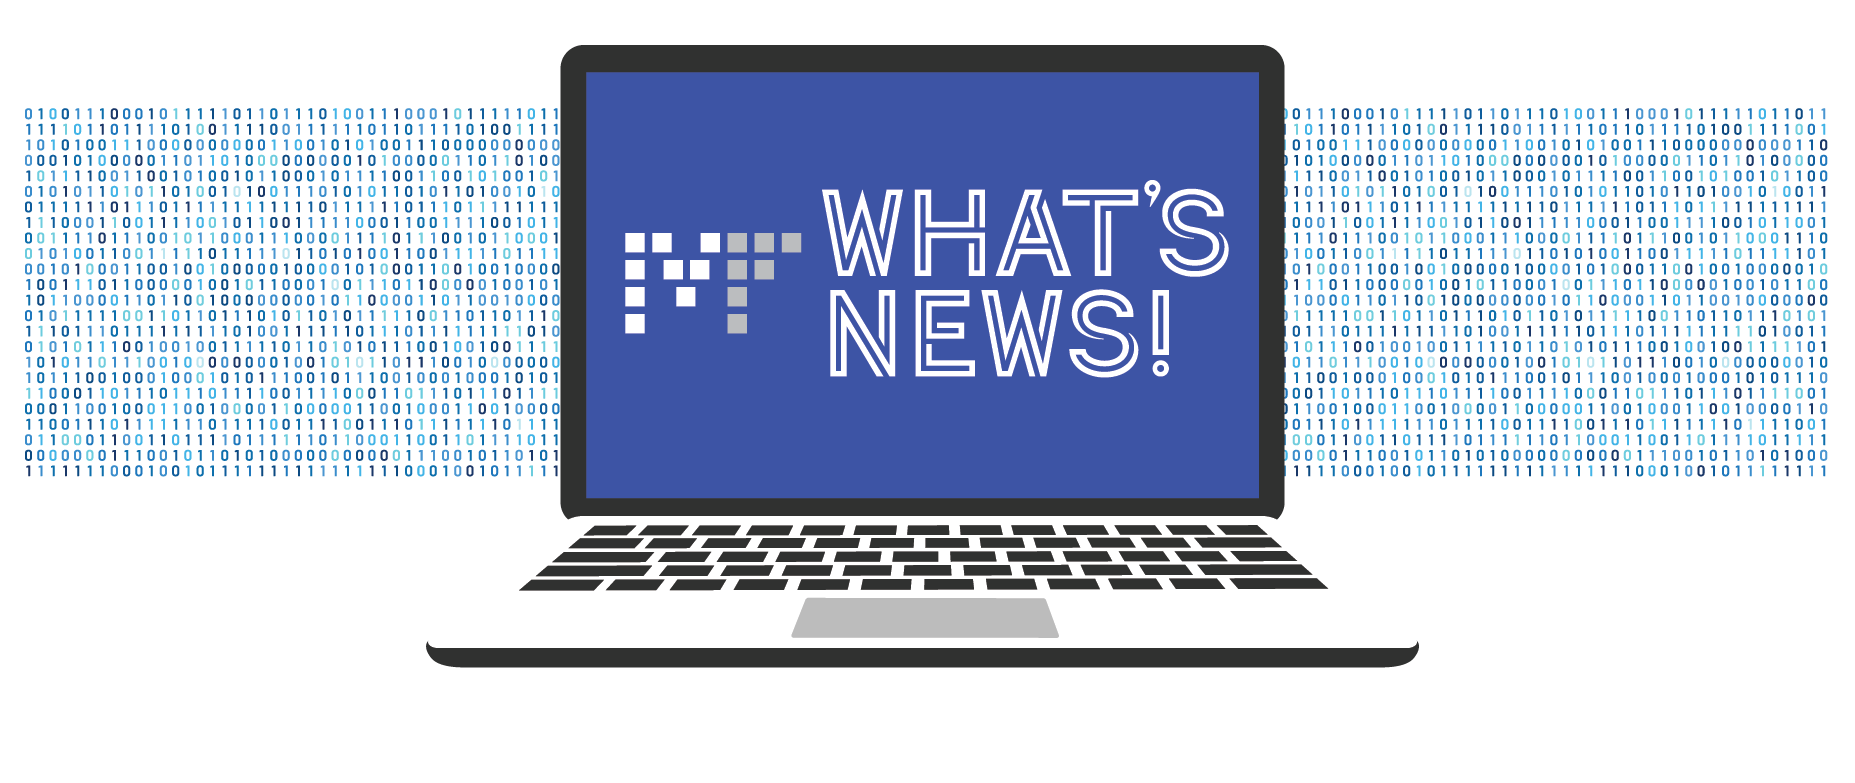 What's News!